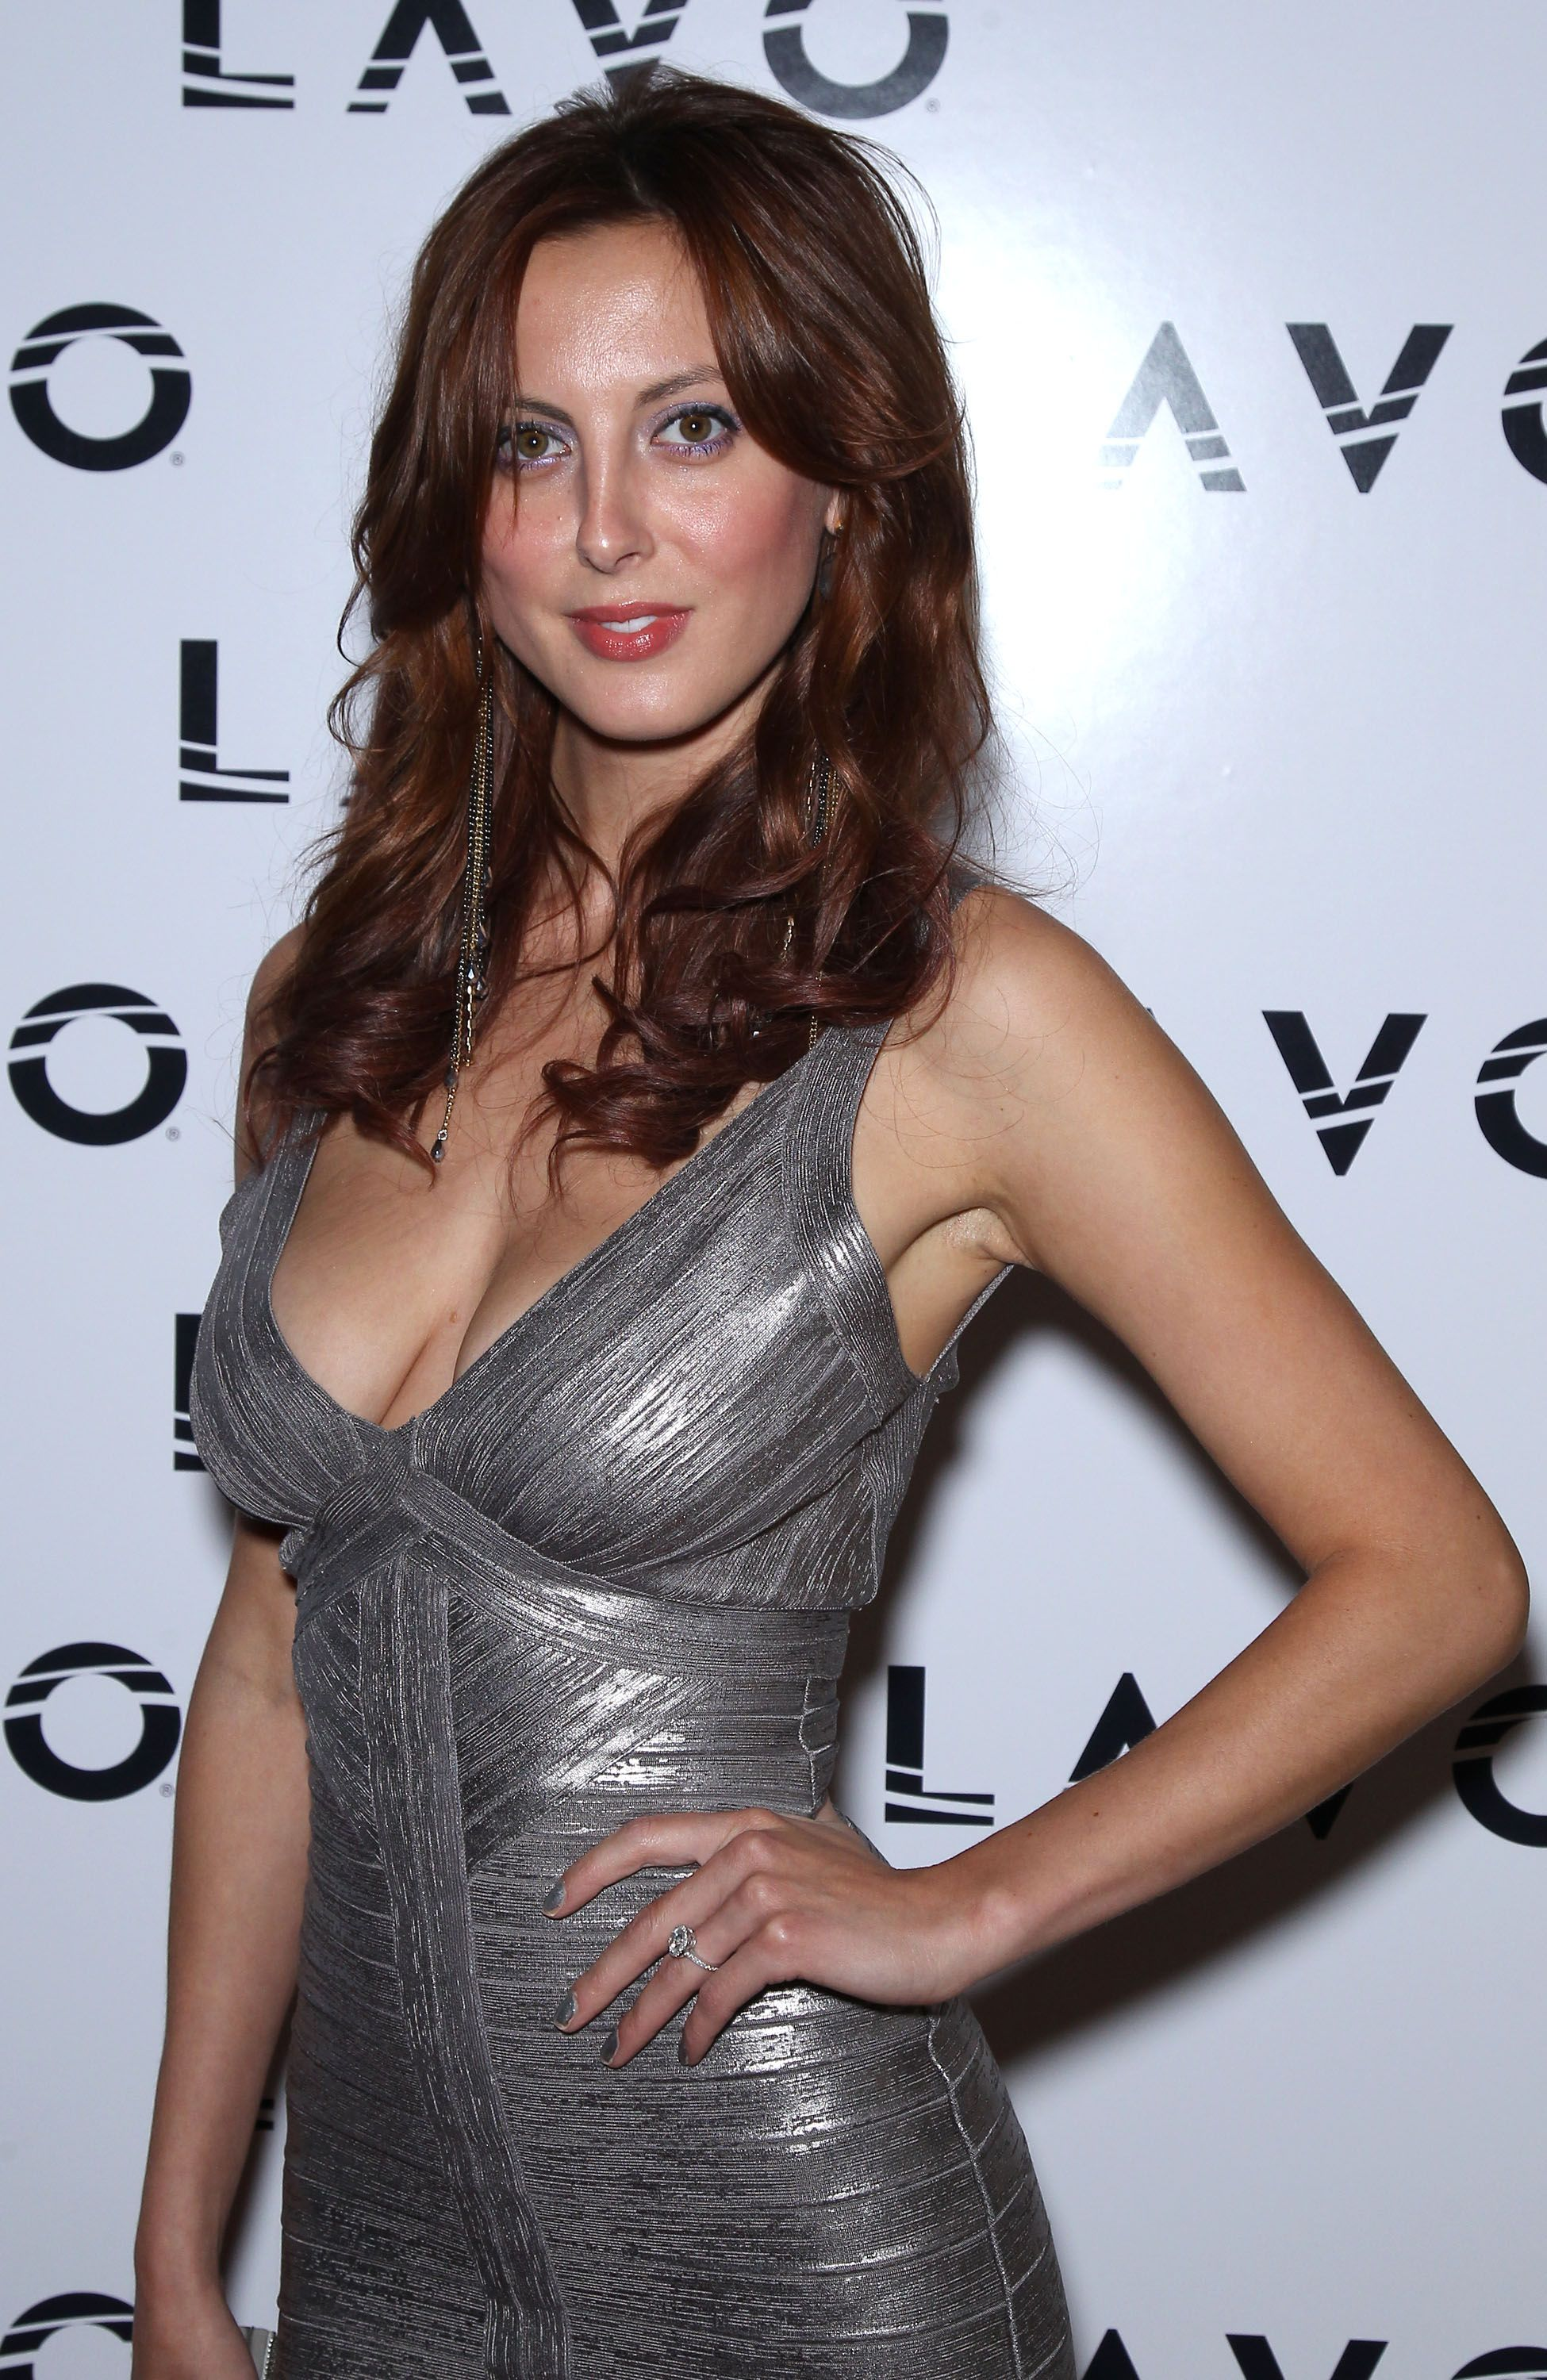 Cleavage Eva Amurri naked (56 photo), Pussy, Sideboobs, Twitter, legs 2017